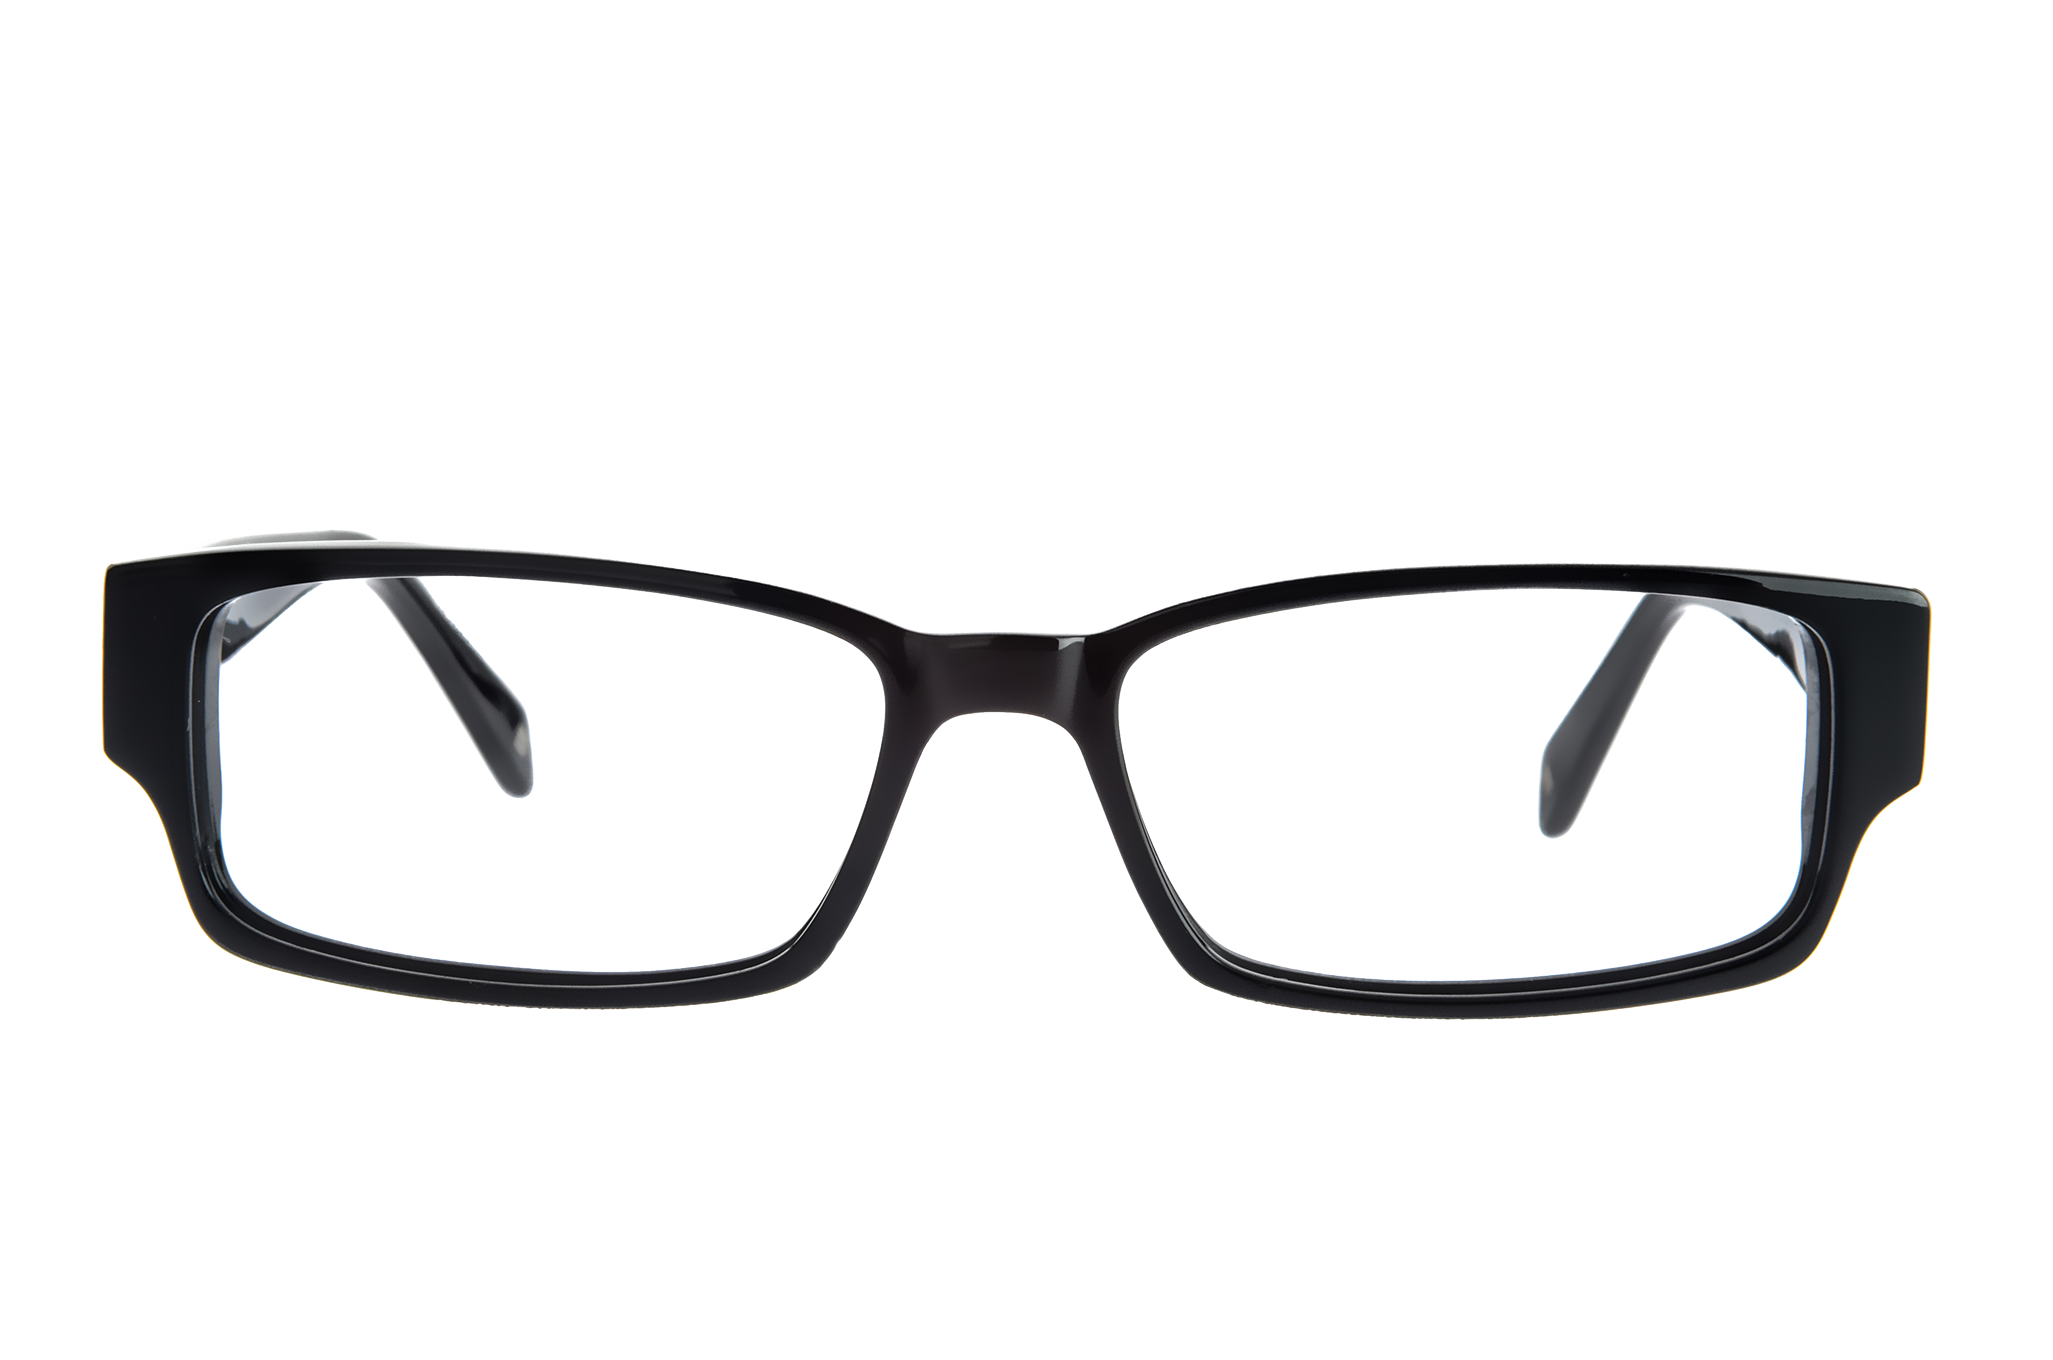 Glasses png images free. Transparent photographs glass picture stock